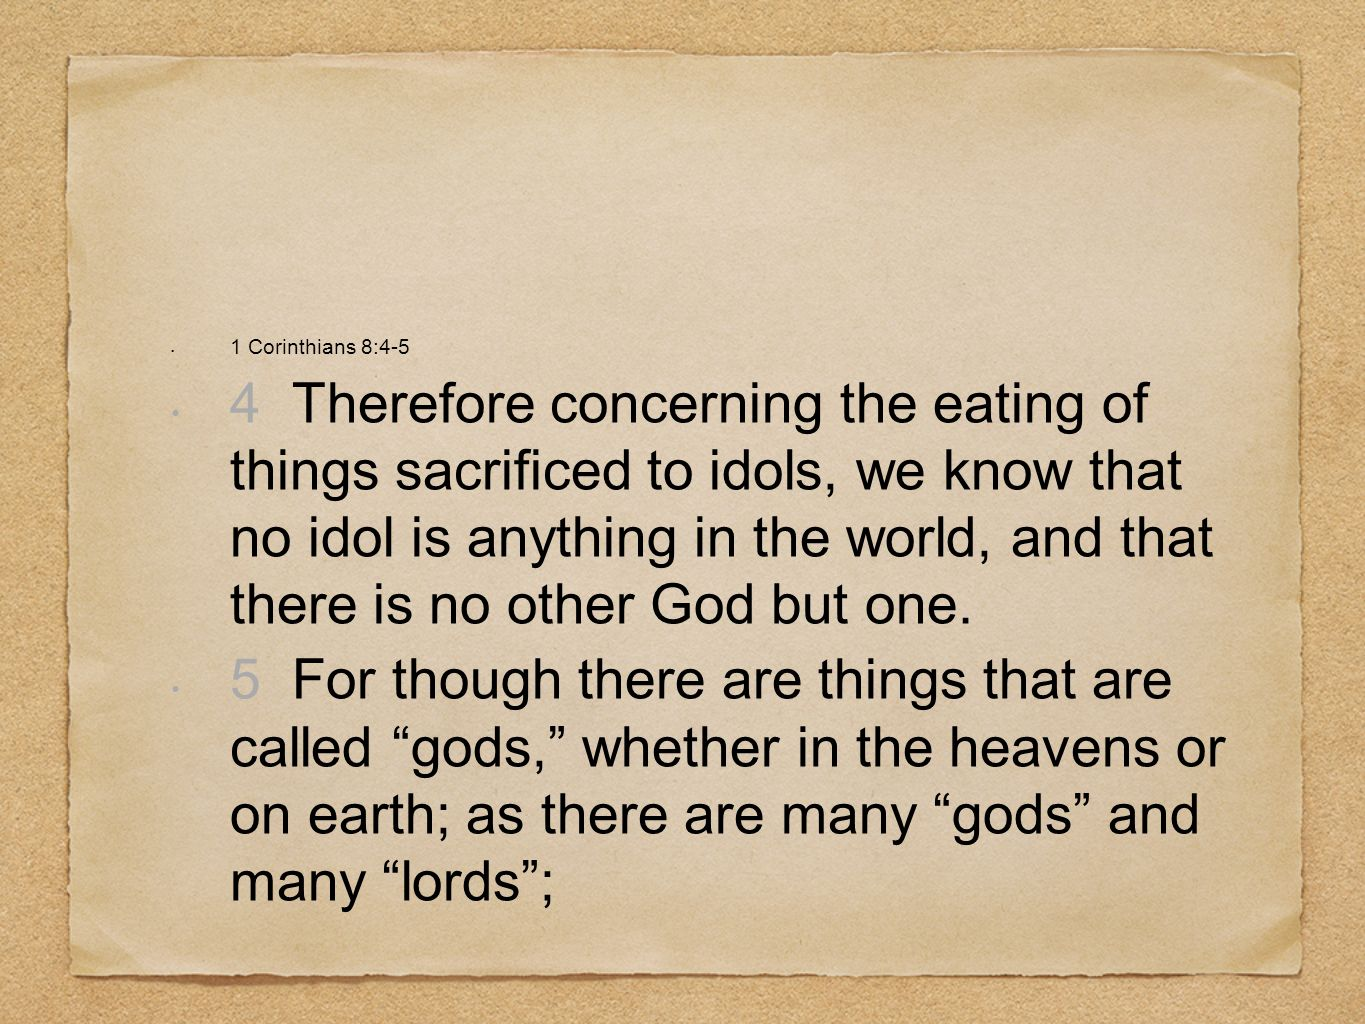 1 Corinthians 8:4-5 4 Therefore concerning the eating of things sacrificed to idols, we know that no idol is anything in the world, and that there is